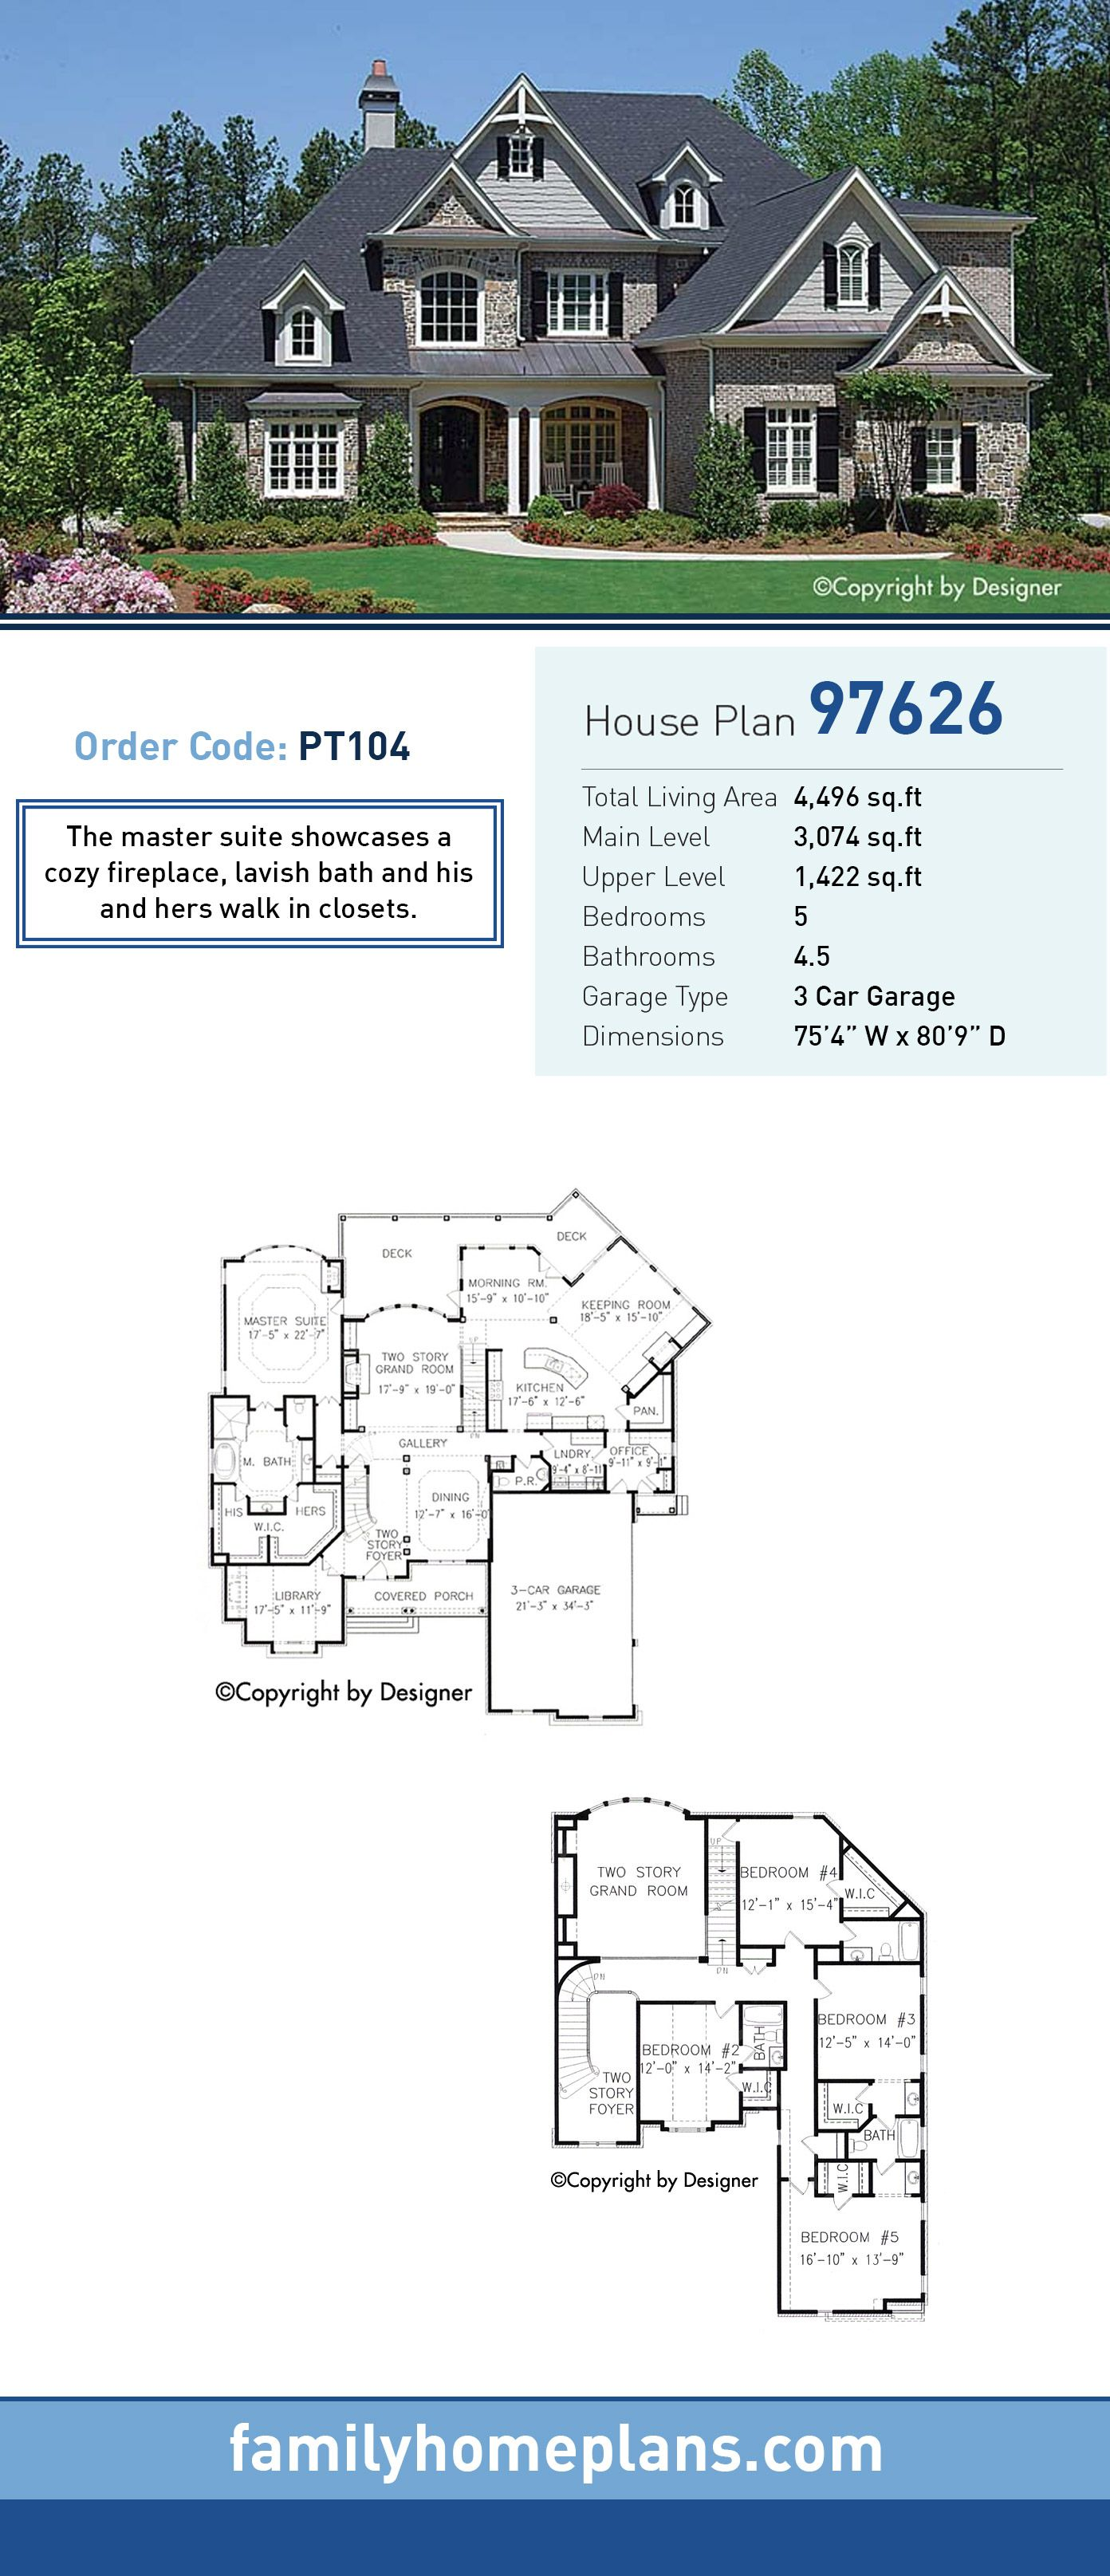 Traditional House Plan 97626 Total Living